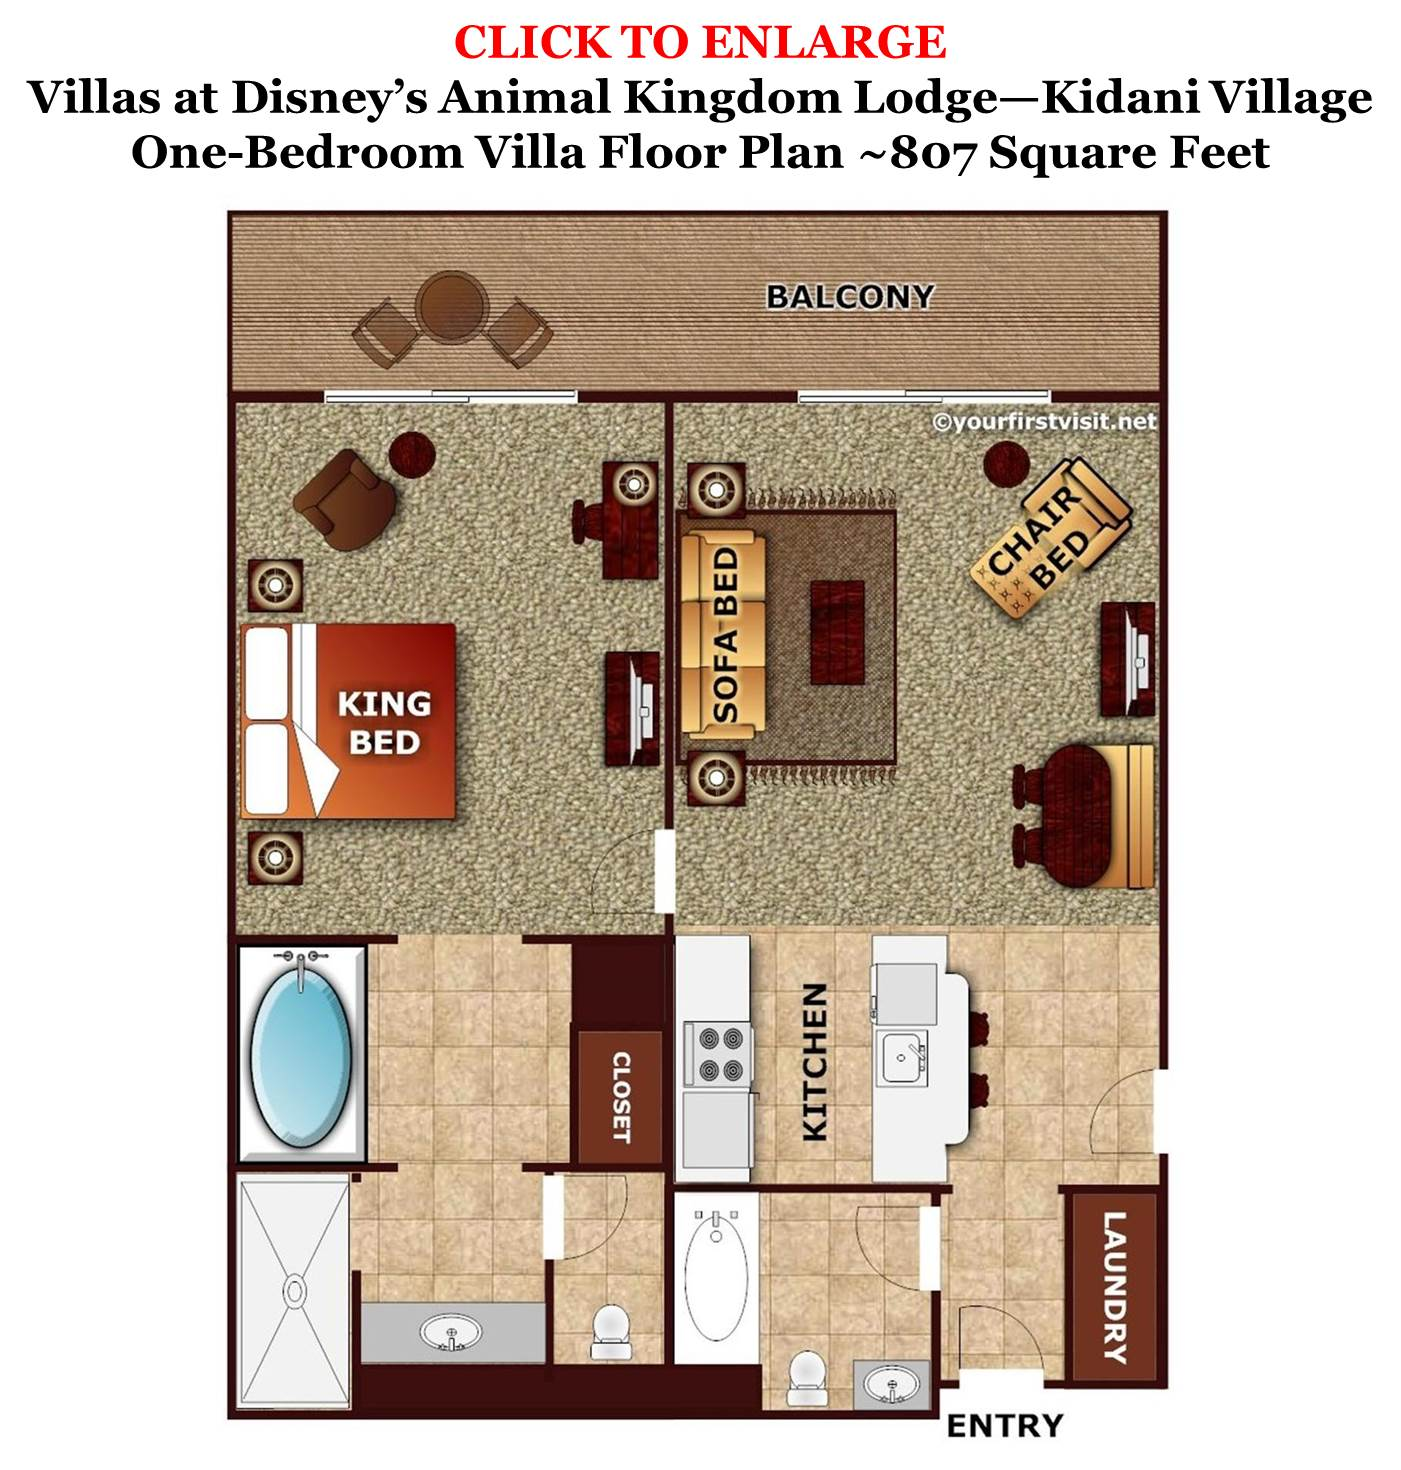 Disney Kidani Village One Bedroom Villa